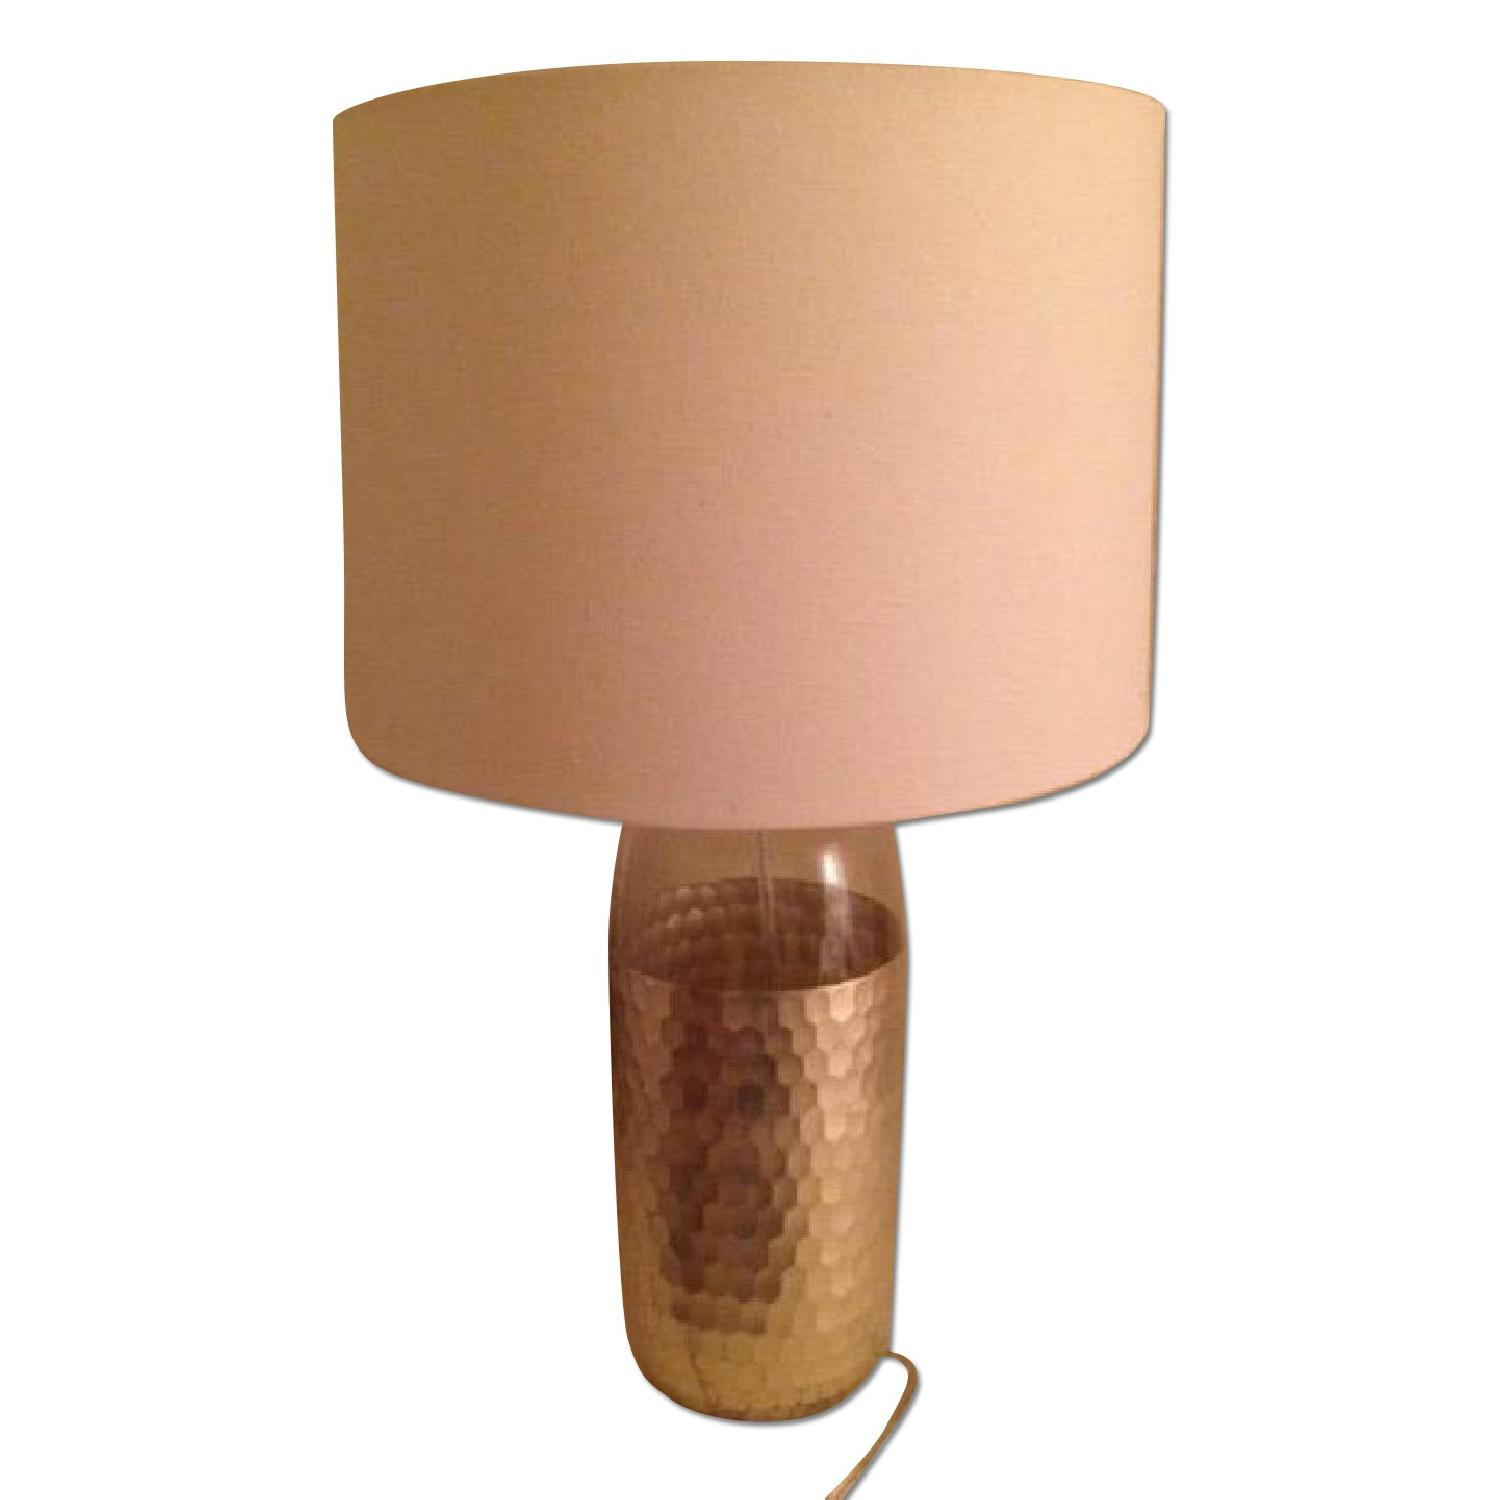 West Elm Metallic Table Lamp - image-0